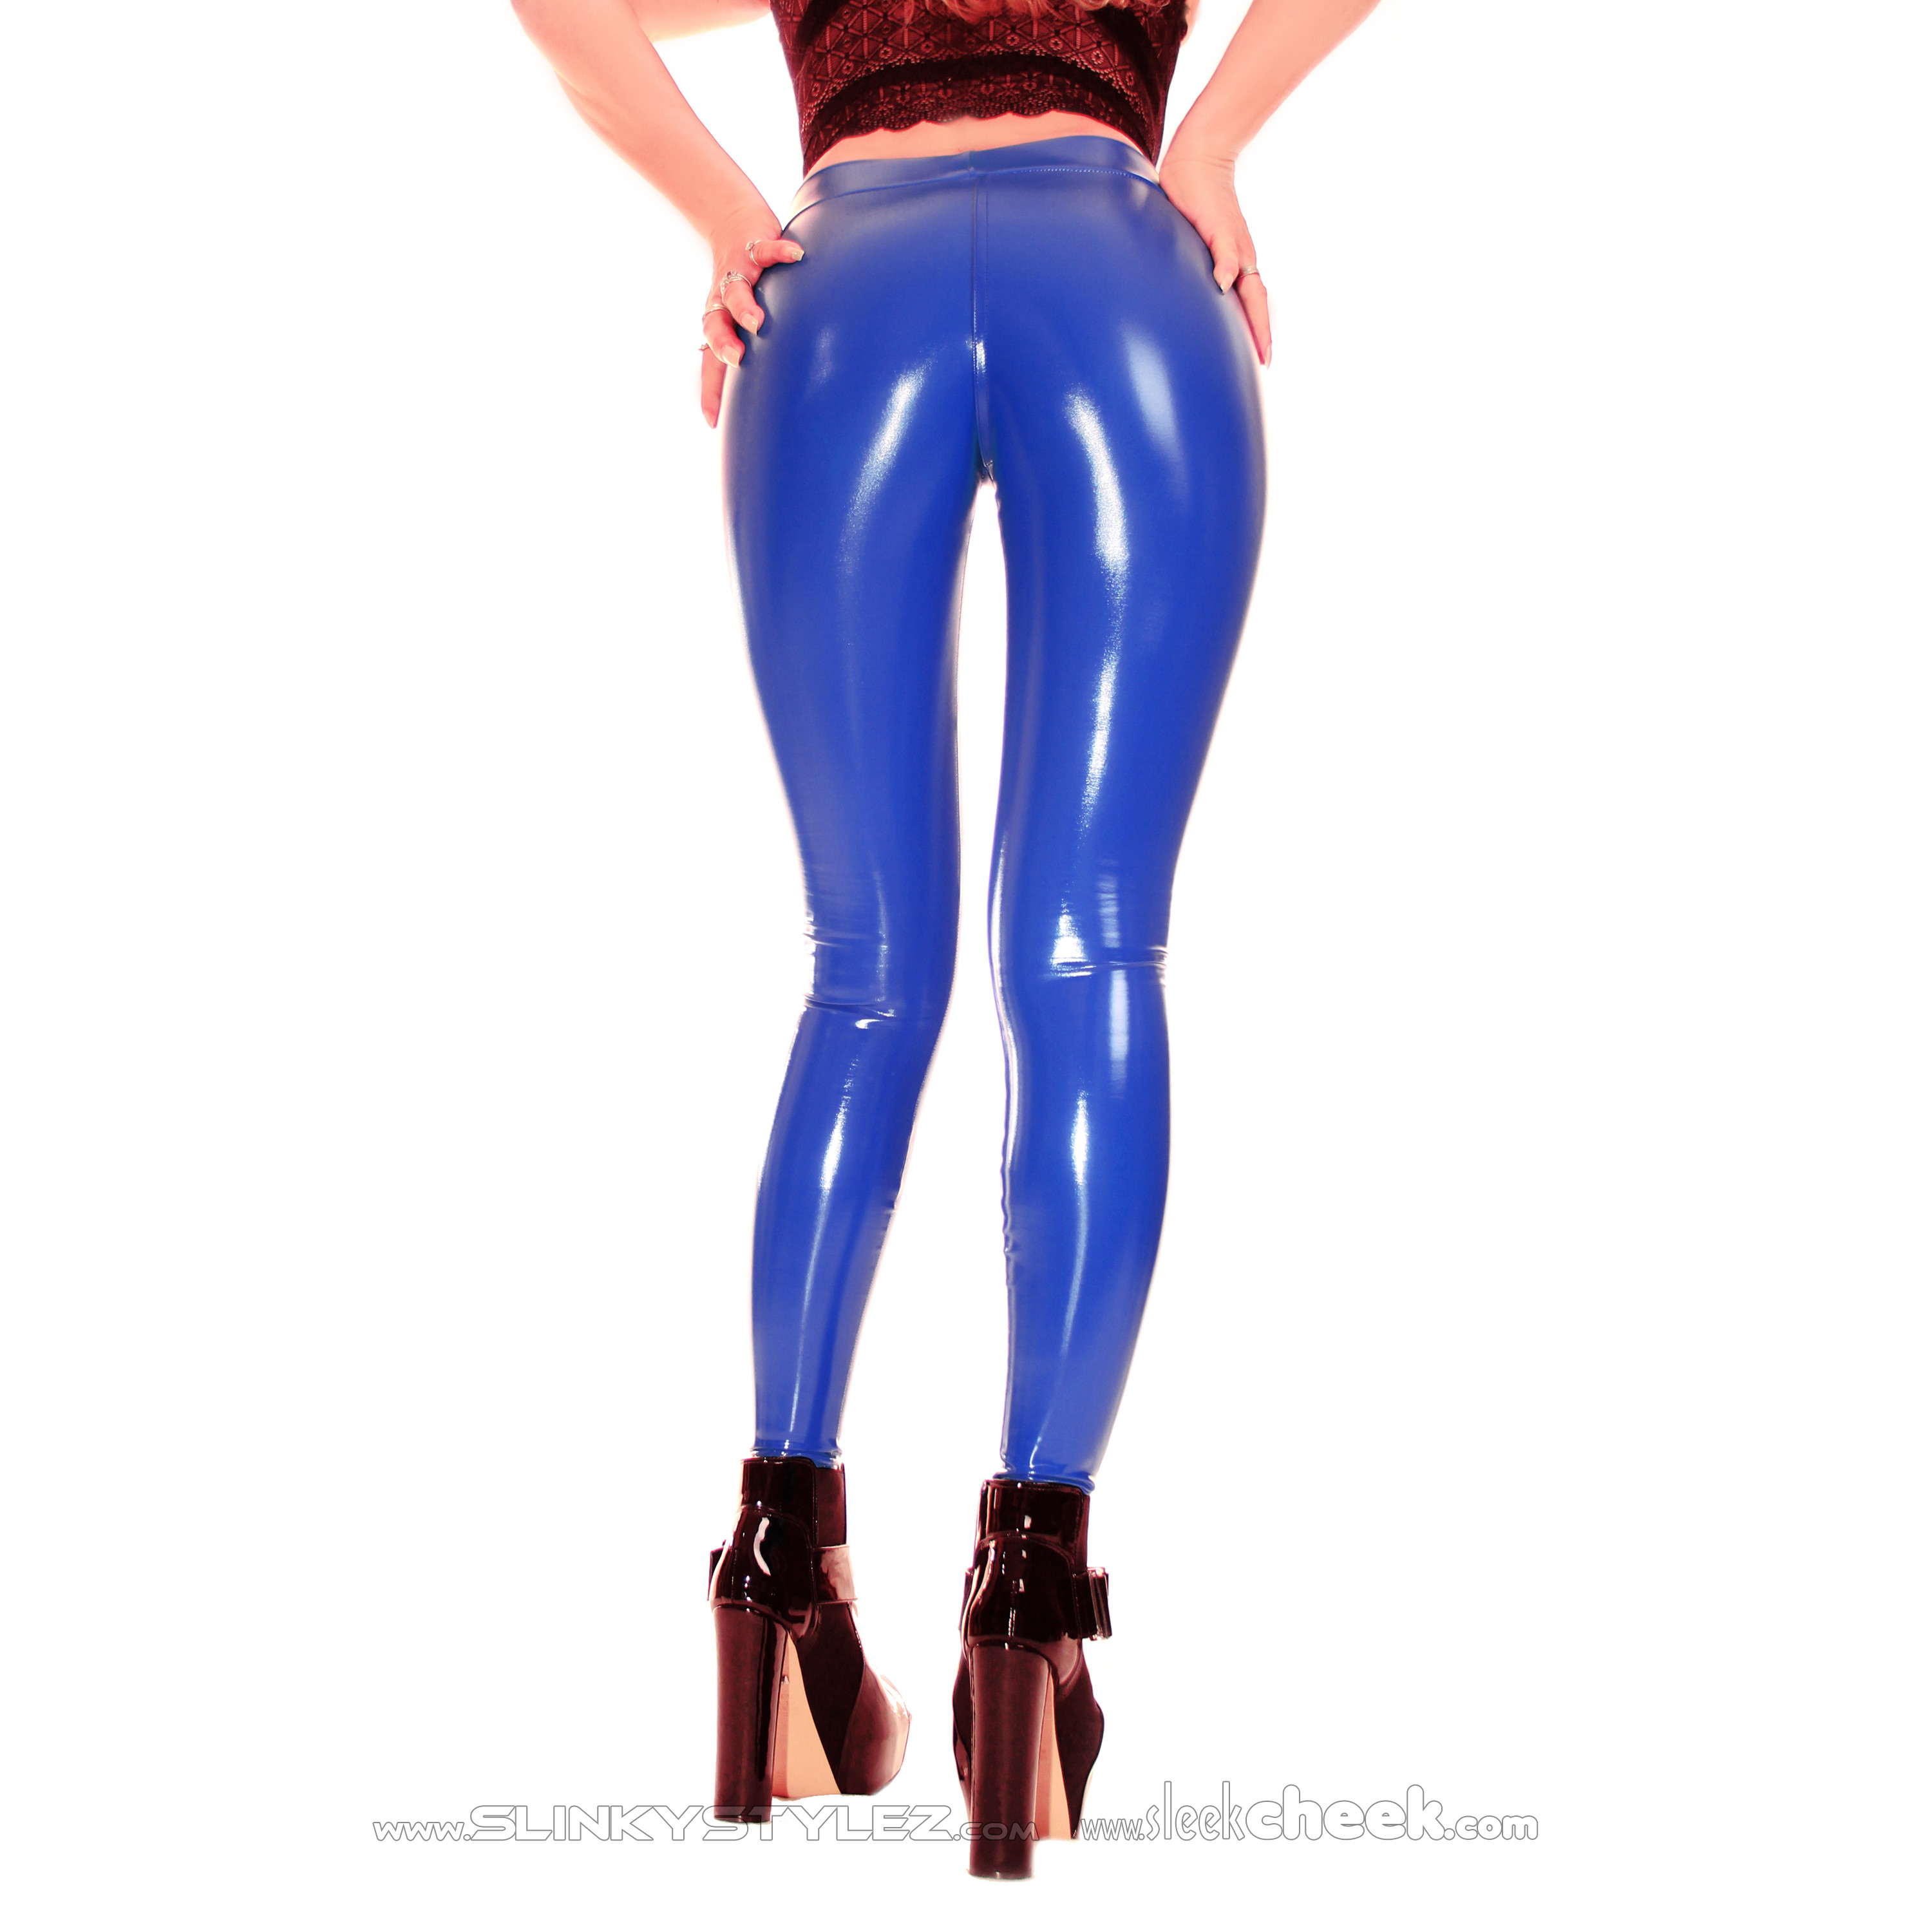 SLEEKCHEEK UltraContour Leggings HL2AX - CrystalLac Z360 ROYALBLUE - STANDARD (L22D-N10N21)